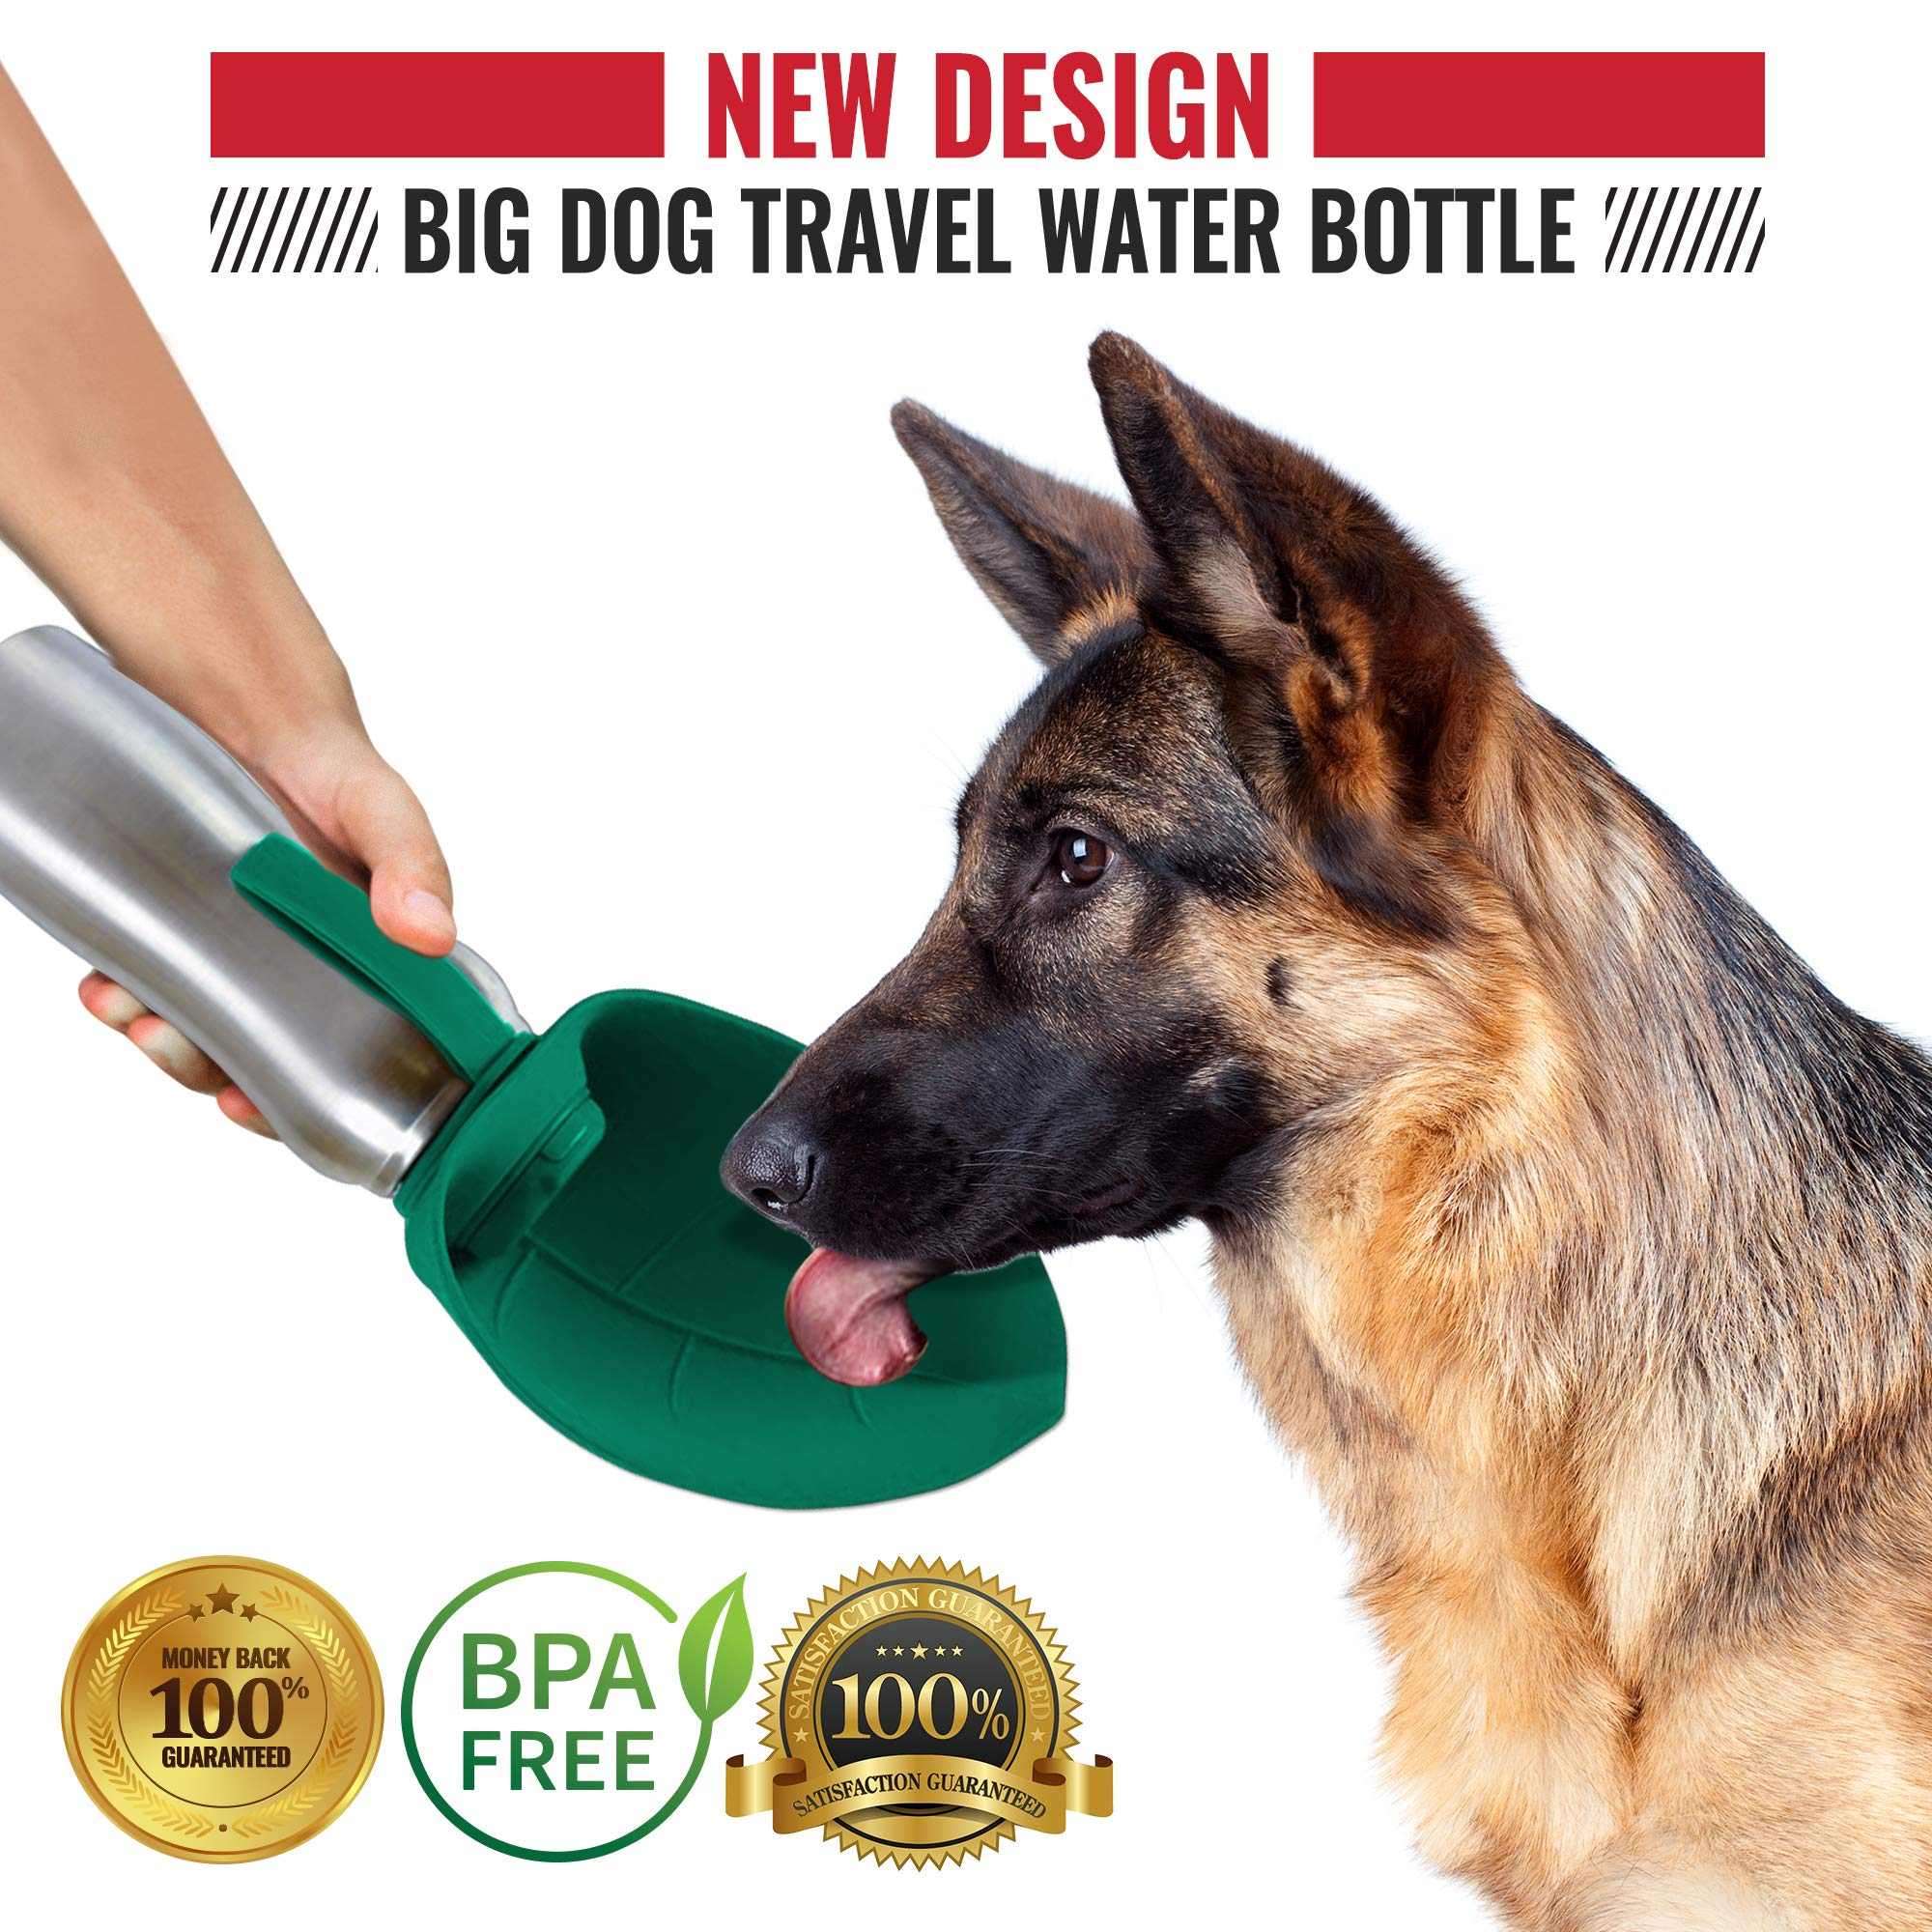 PupFlask Portable Water Bottle For Walking | 24 OZ Stainless Steel | Convenient Dog Travel Water Bottle Keeps Pup Hydrated | Portable Dog Water Bowl & Travel Water Bottle For Dogs (Quetzal Green) by Tuff Pupper (Image #5)